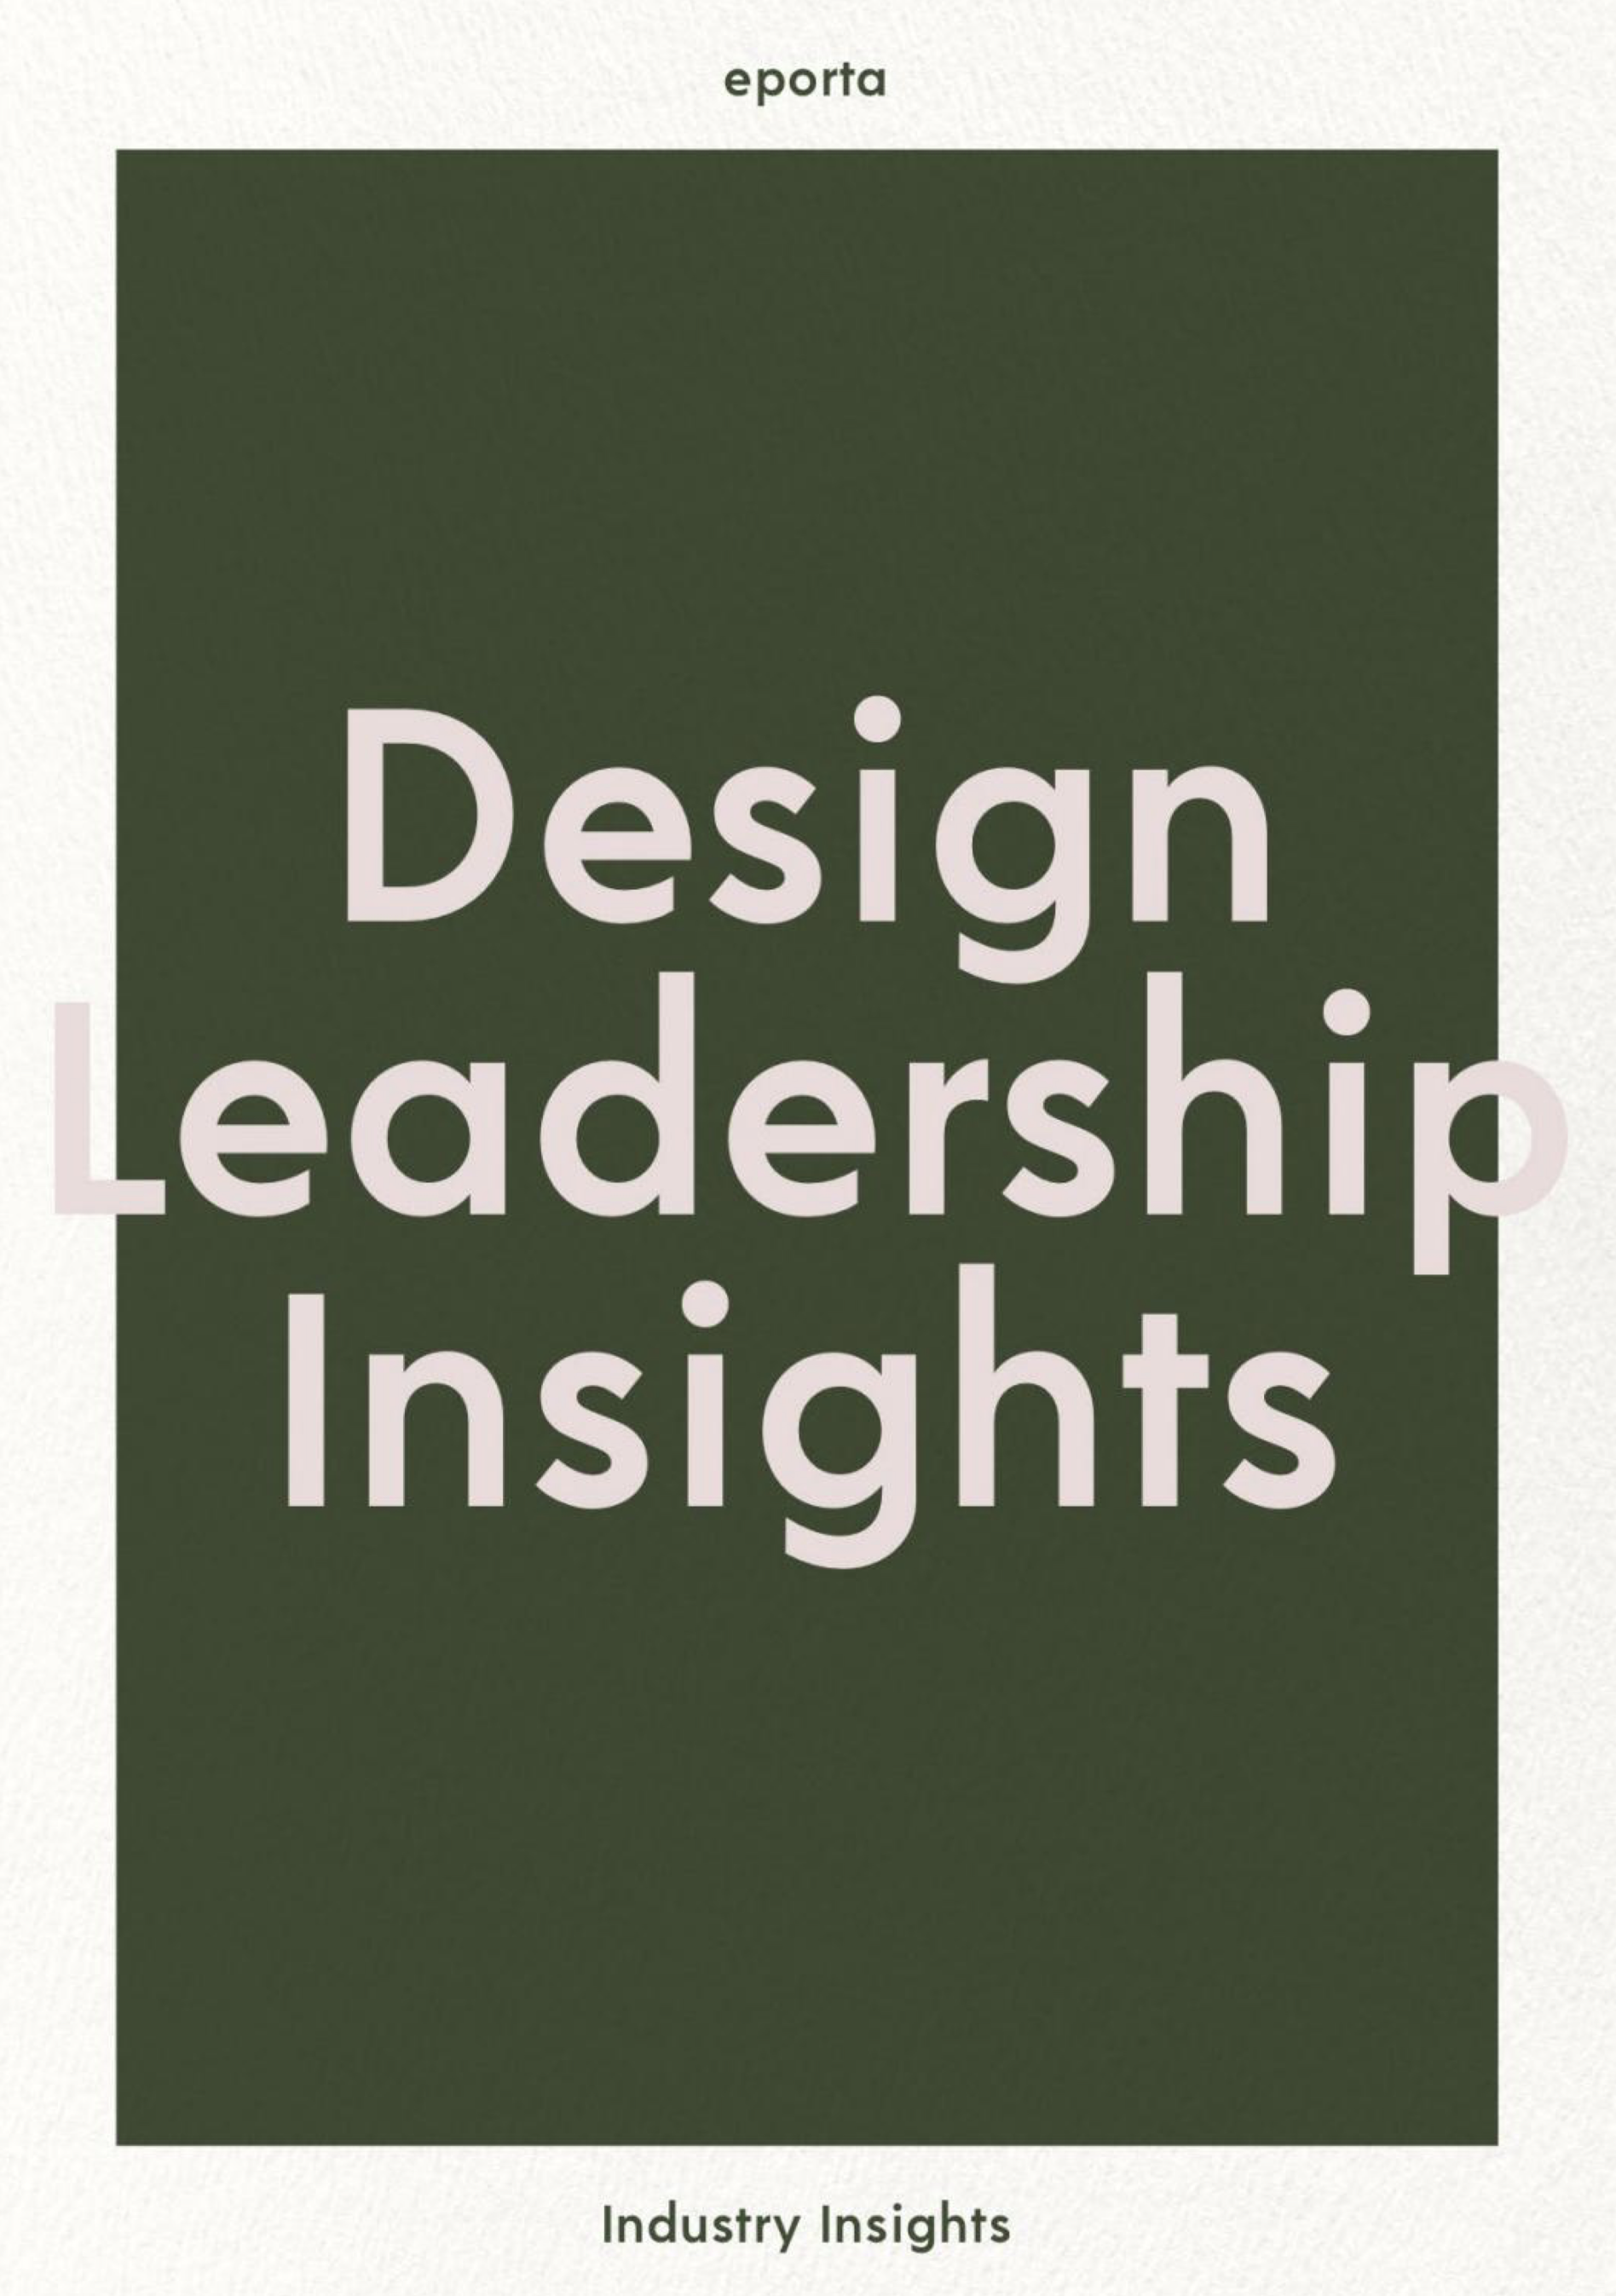 Designed by Woulfe, Eporta Design Leadership Insights